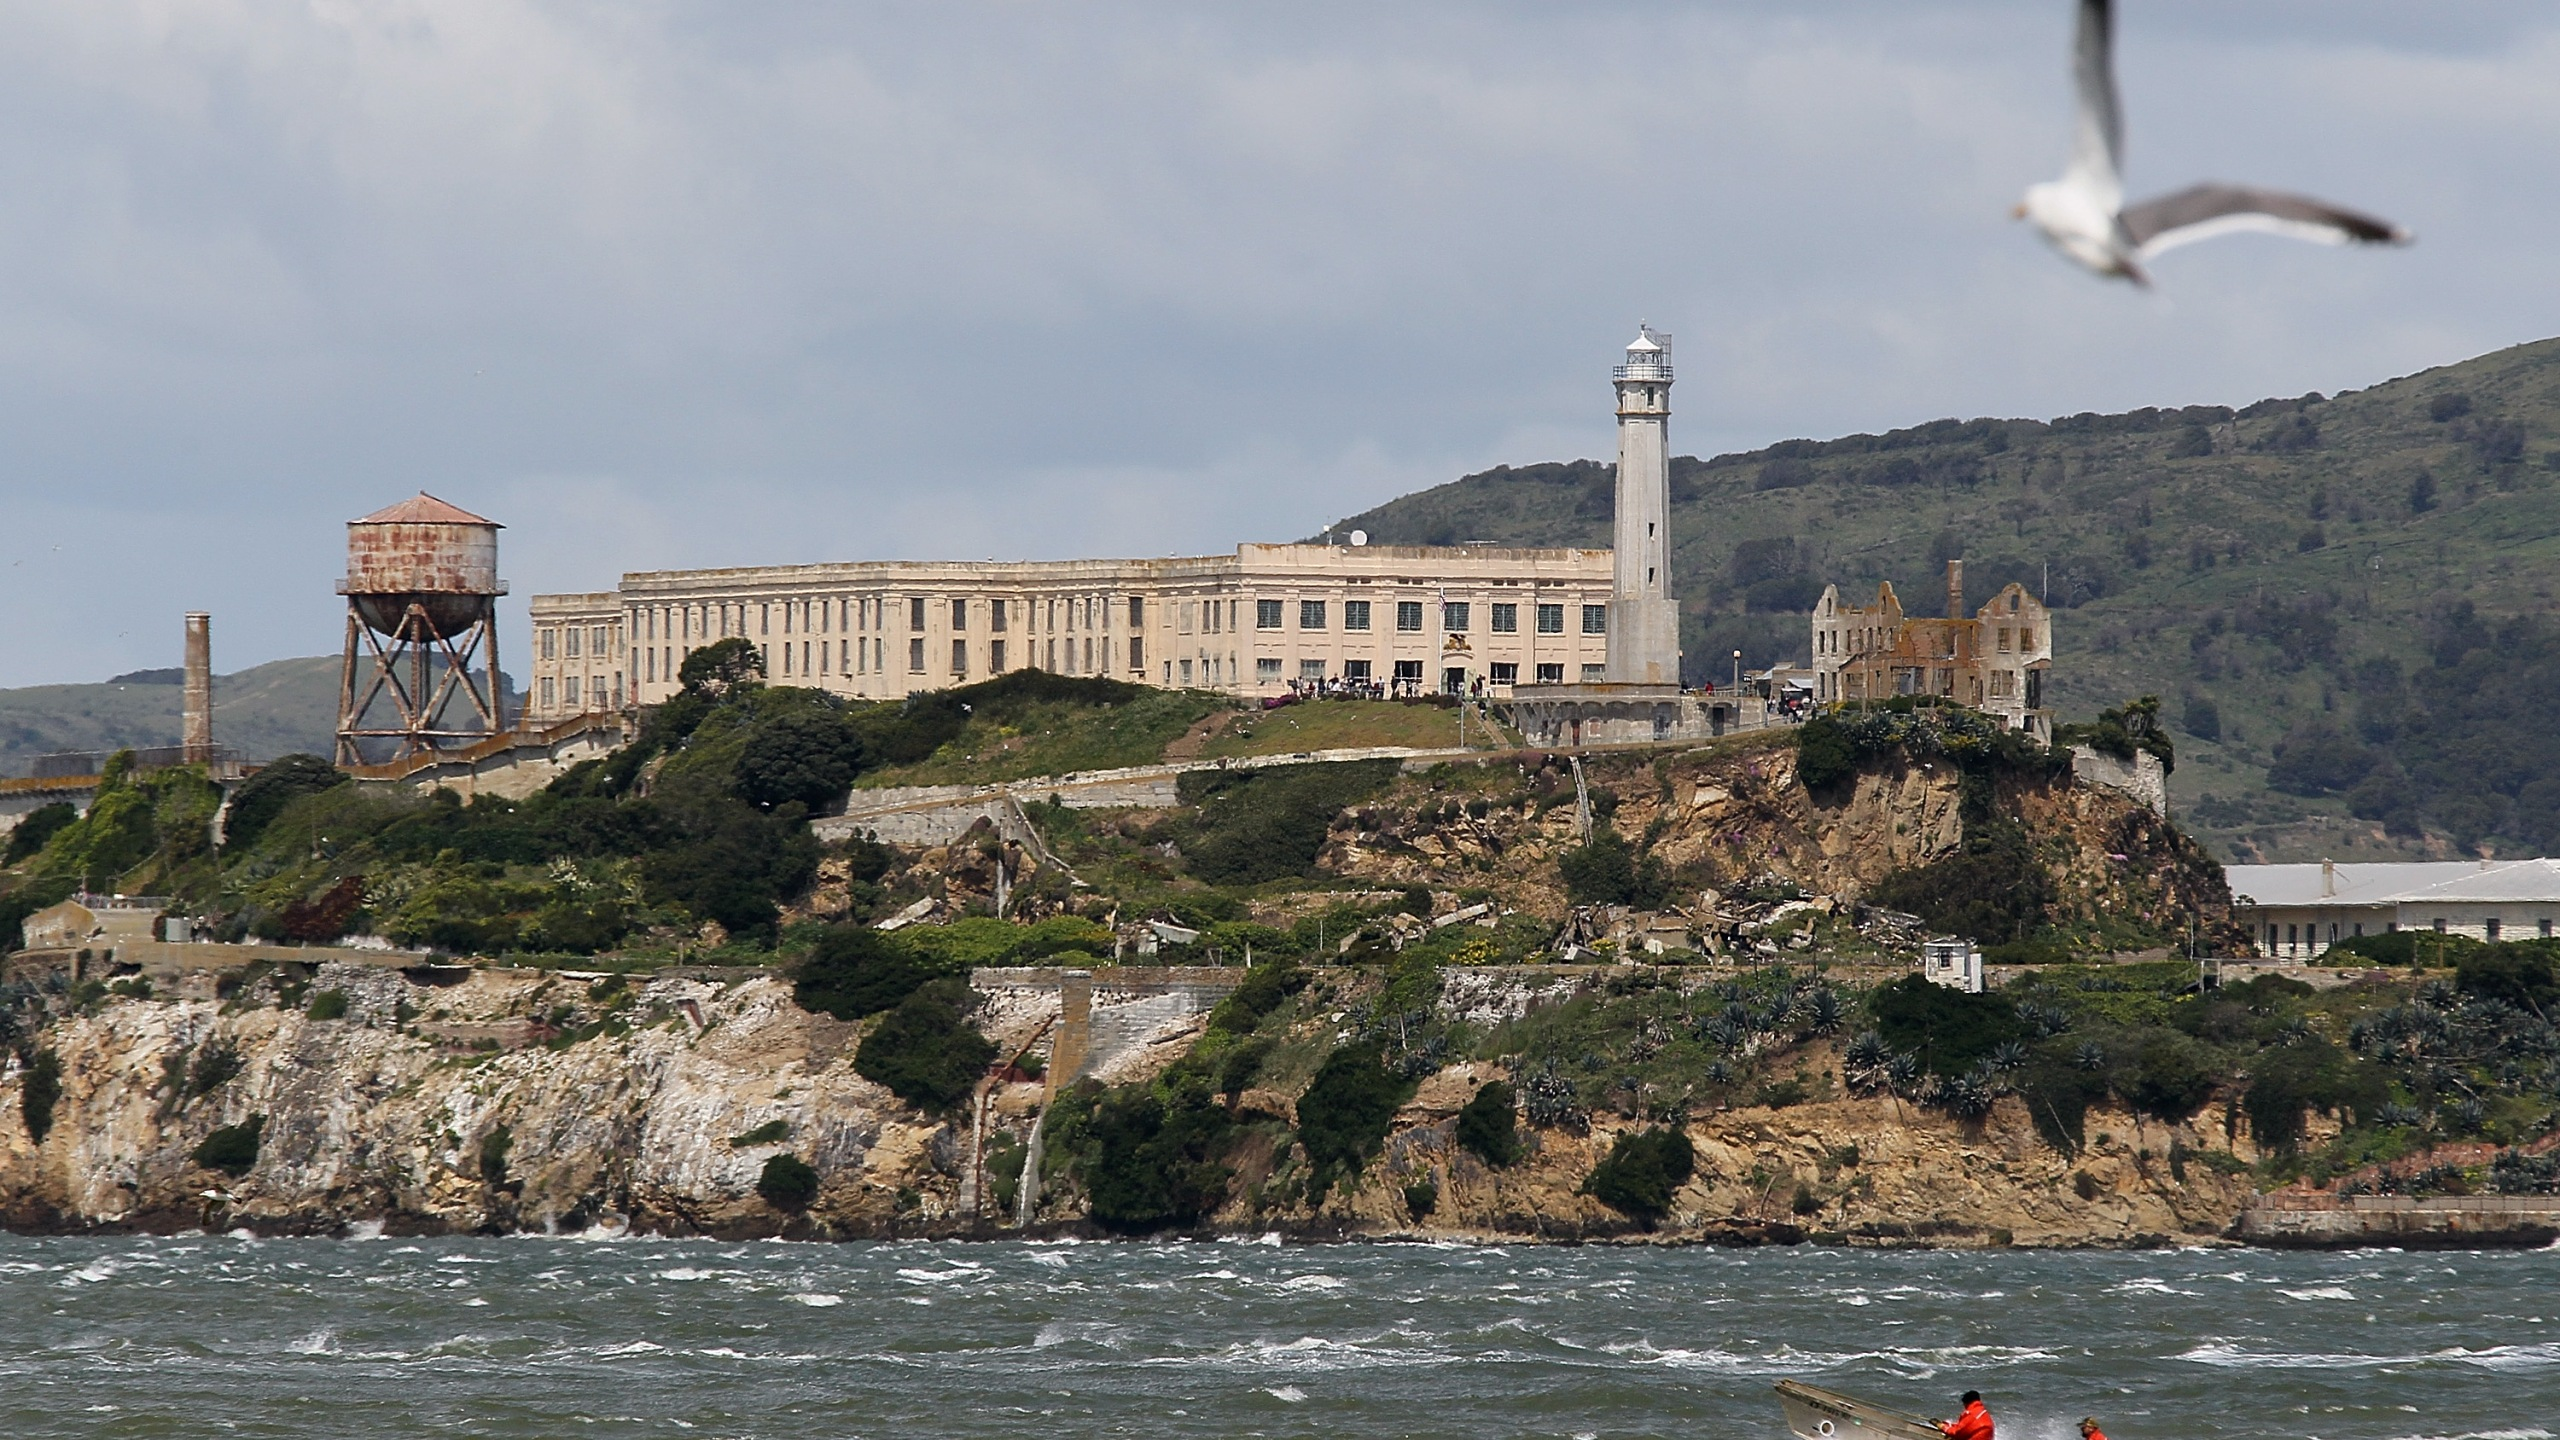 A boat passes in front of Alcatraz Island on April 7, 2011 in San Francisco. (Credit: Justin Sullivan/Getty Images)